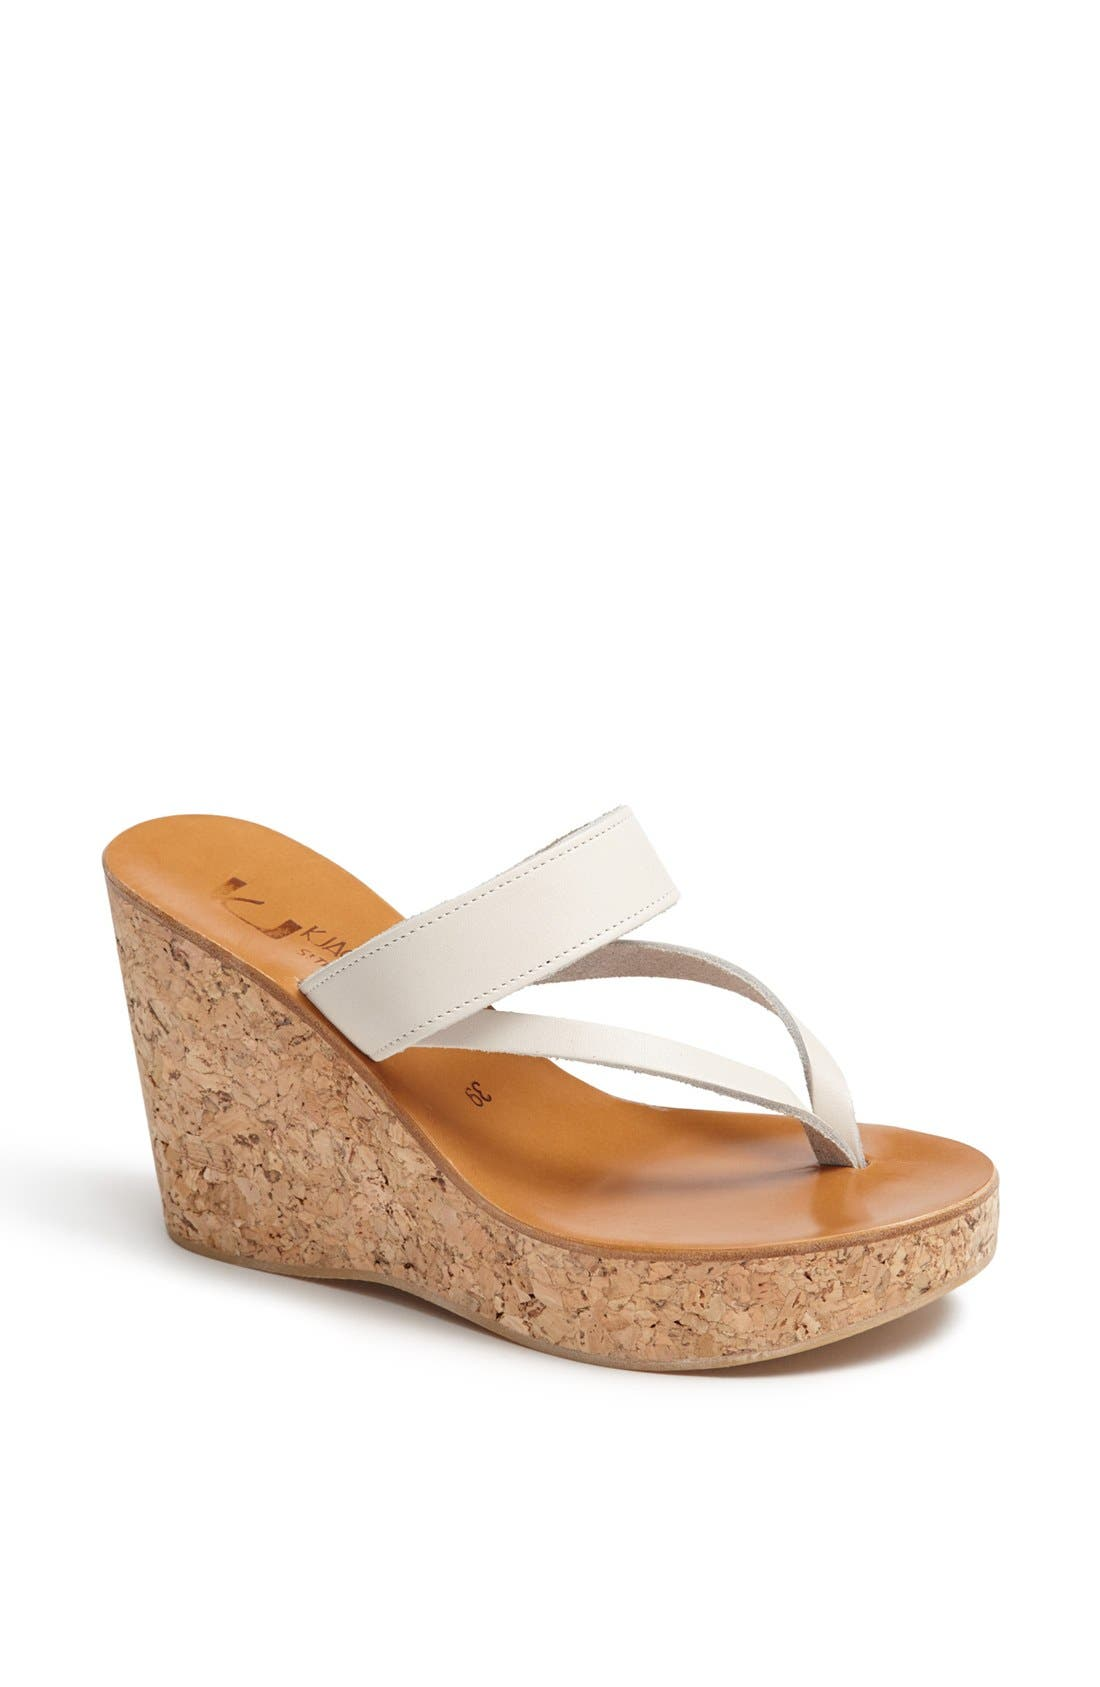 Main Image - K.Jacques St. Tropez 'Saturnine' Cork Wedge Sandal